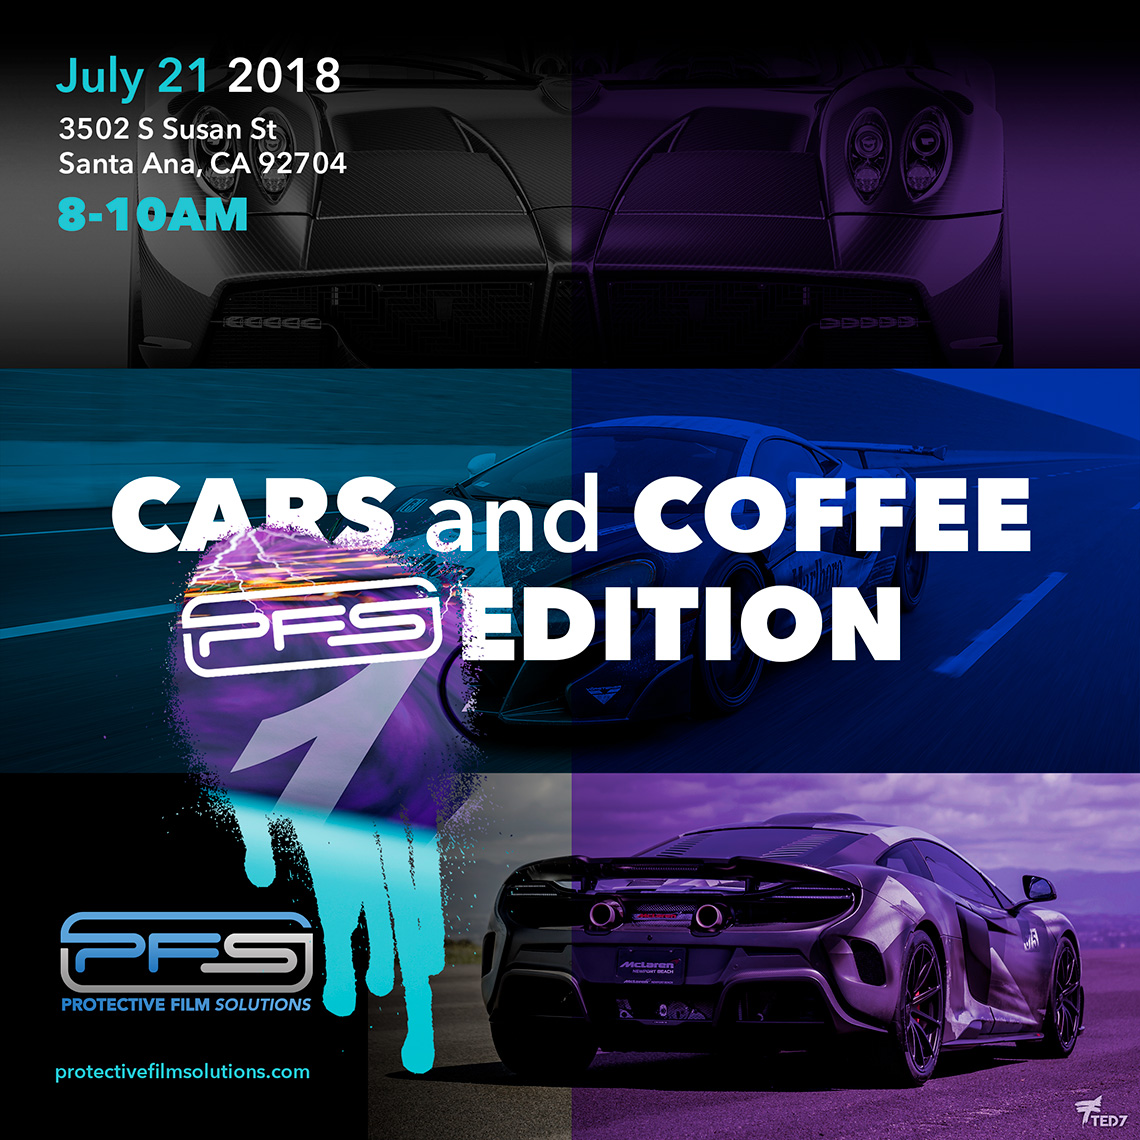 Cars and Coffee PFS Edition July 2018 Flyer